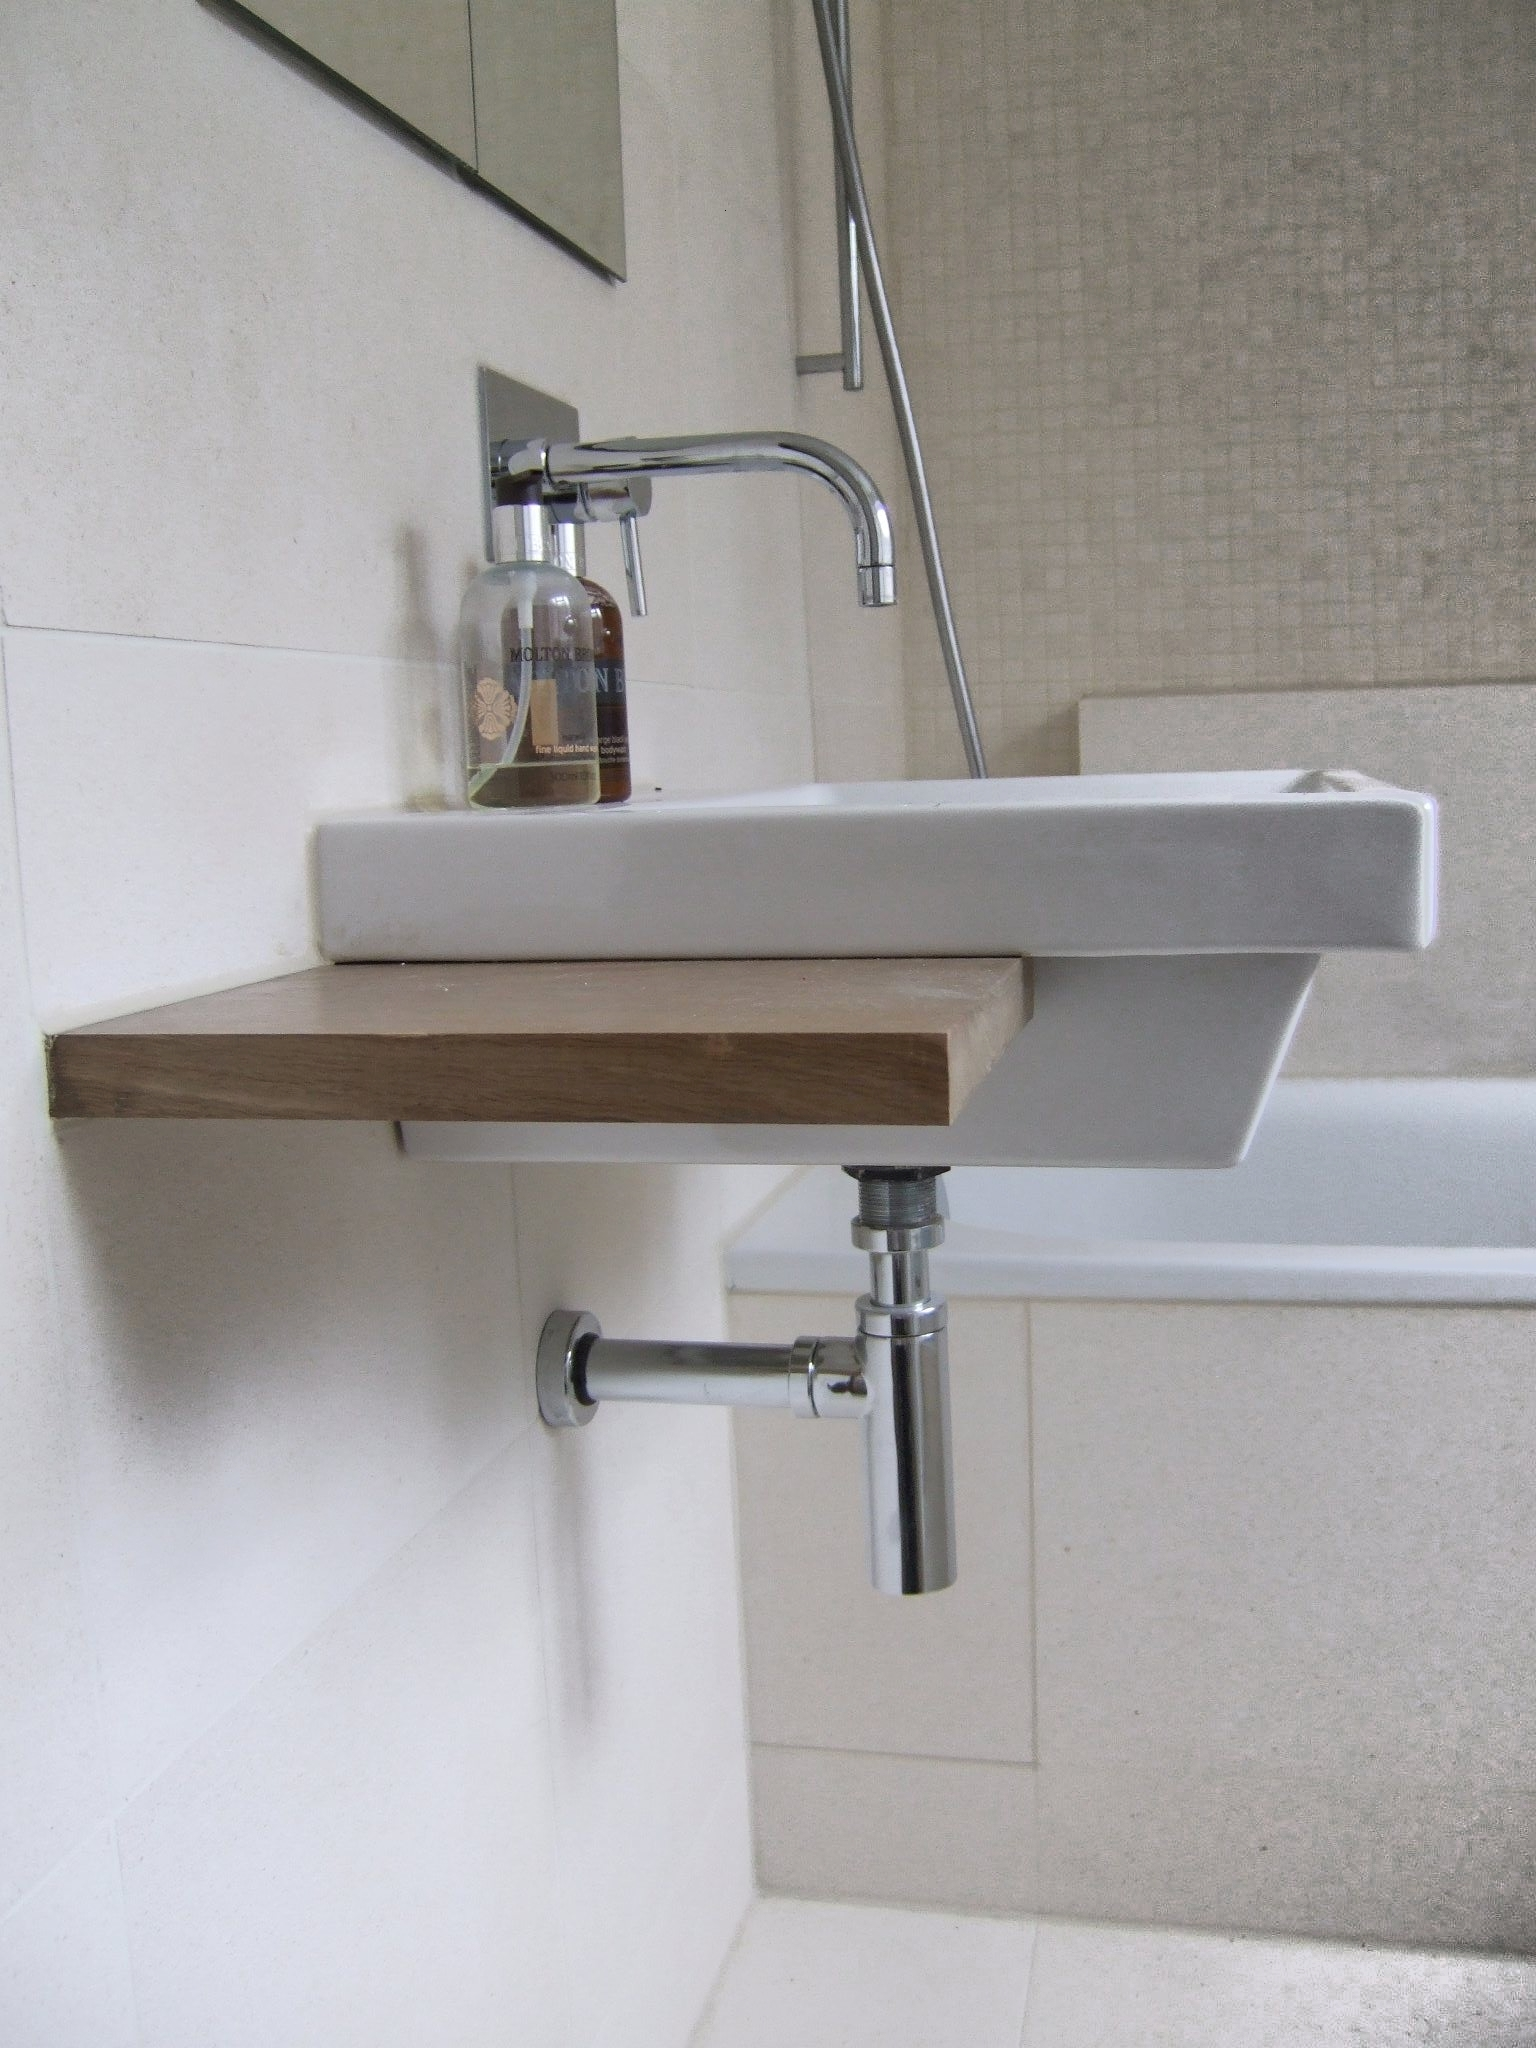 wall mounted basin mixer tap wc with privacy wall bookmark the ...